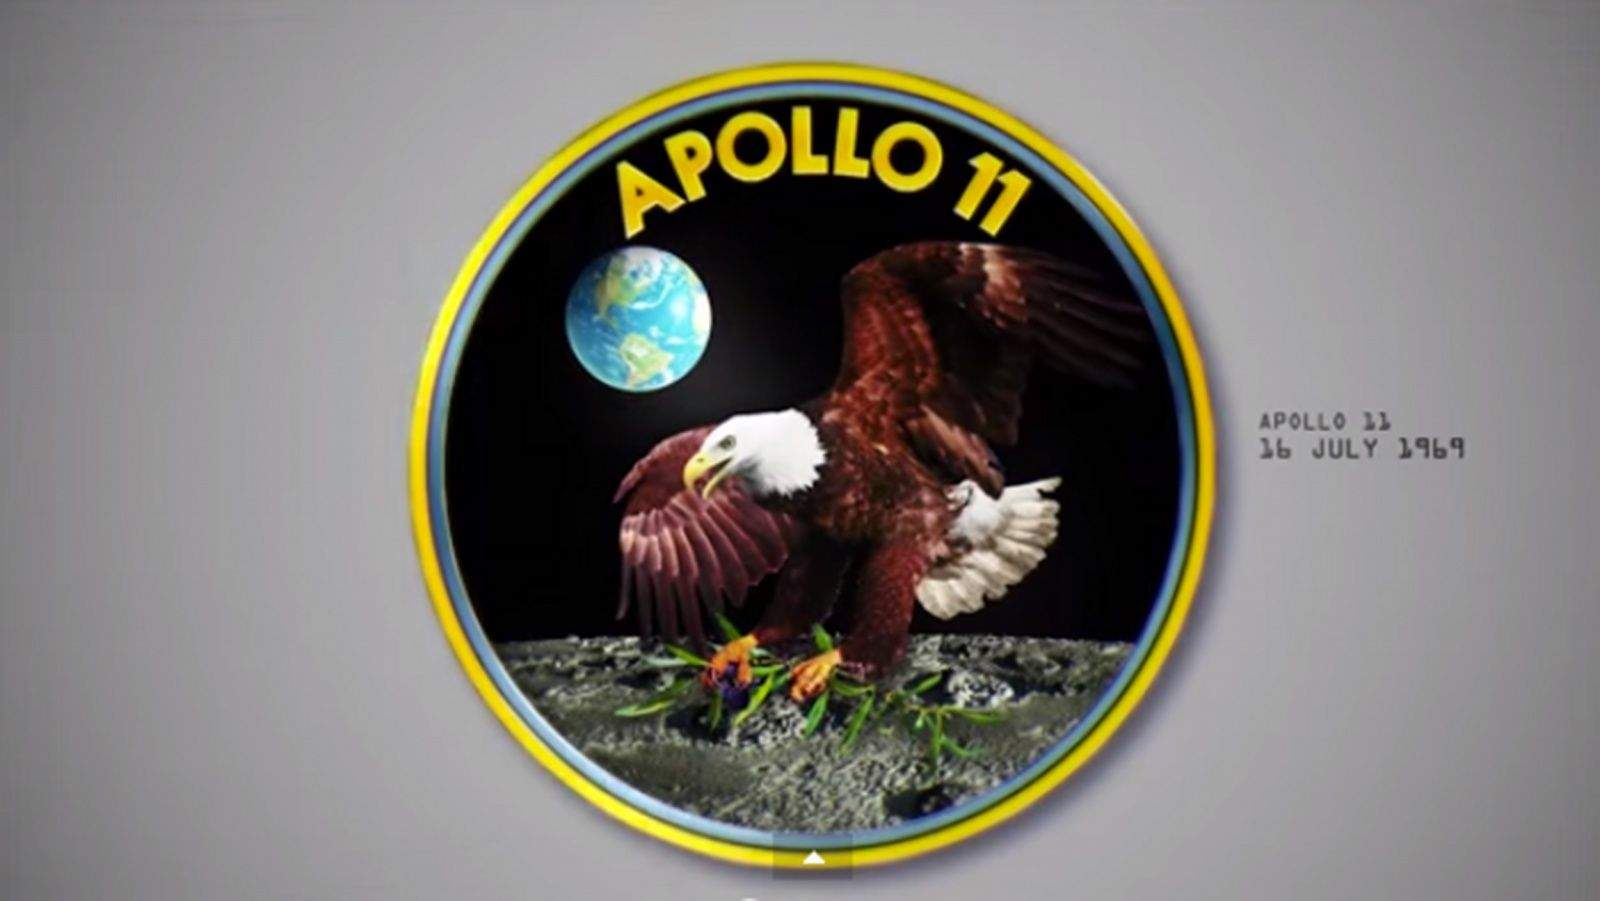 neil armstrong mission name patch - photo #6